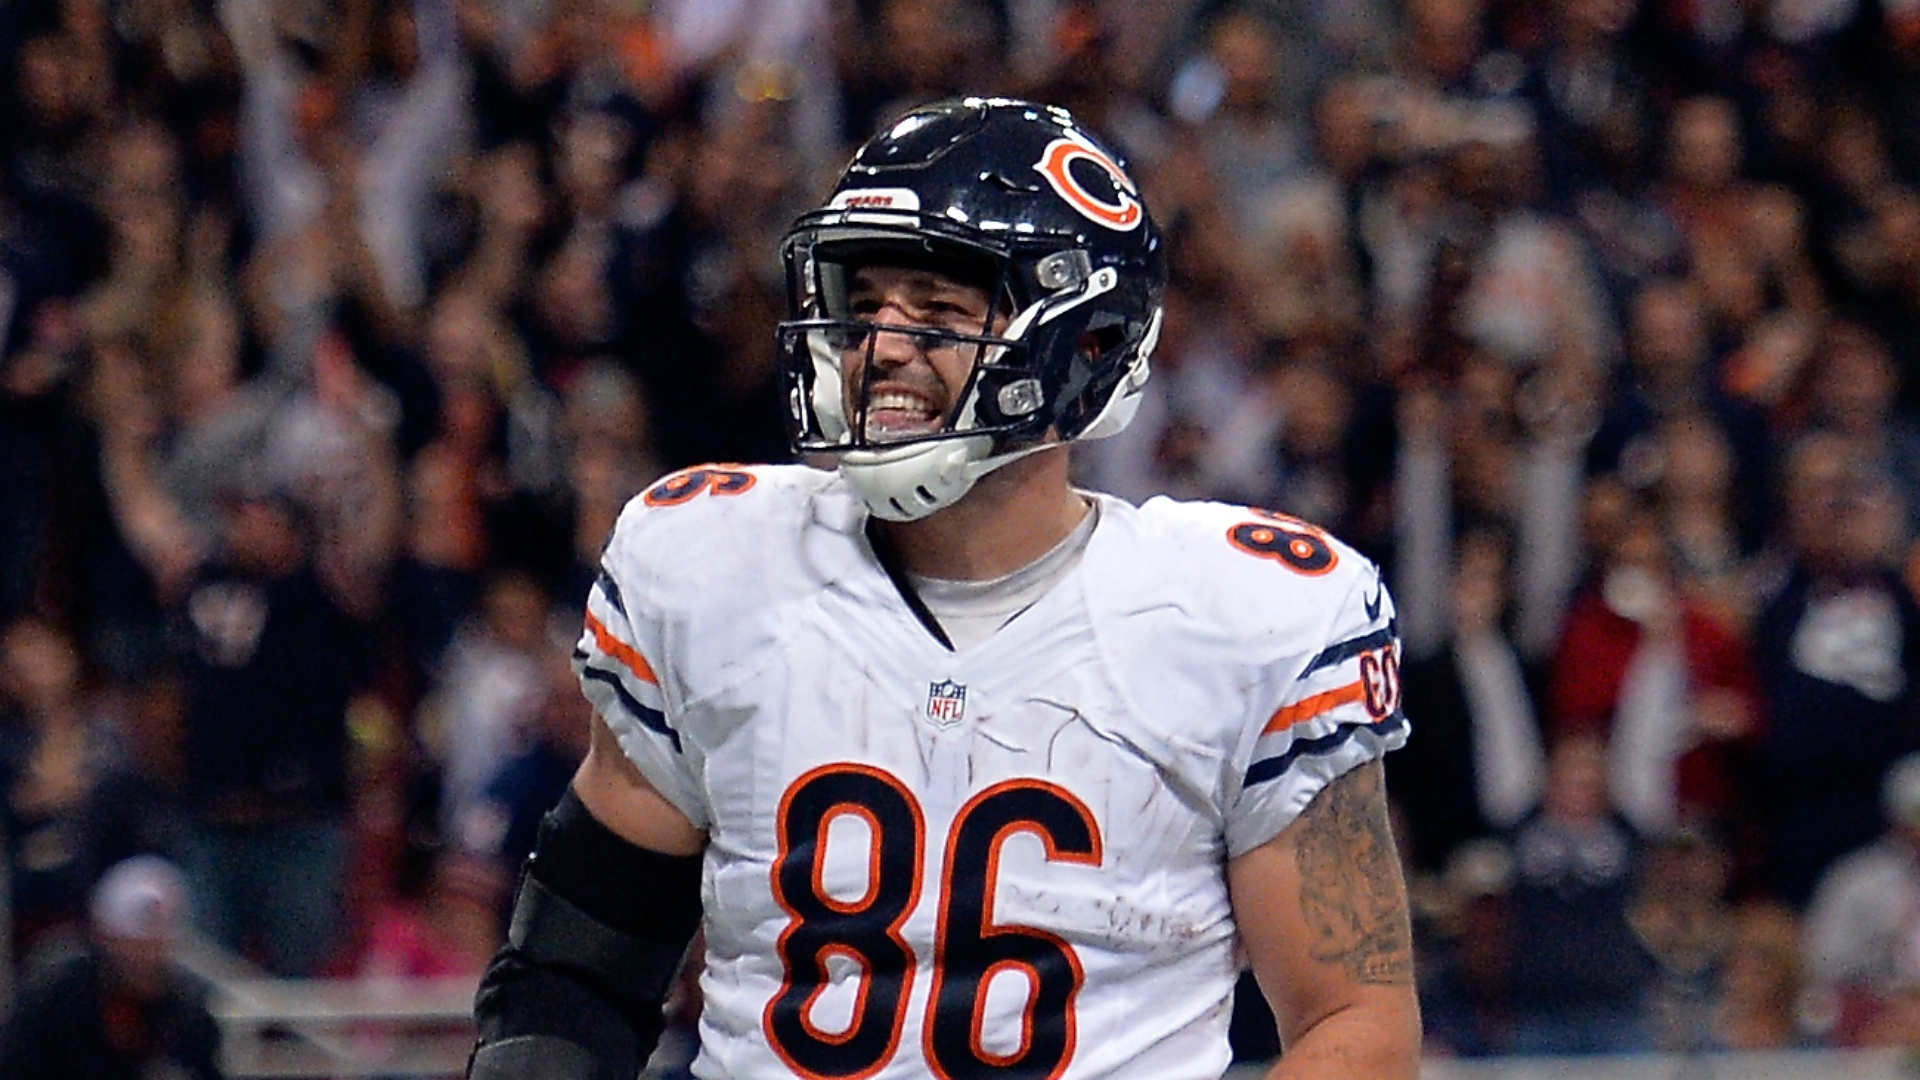 Bears lose Zach Miller to dislocated left knee on negated touchdown